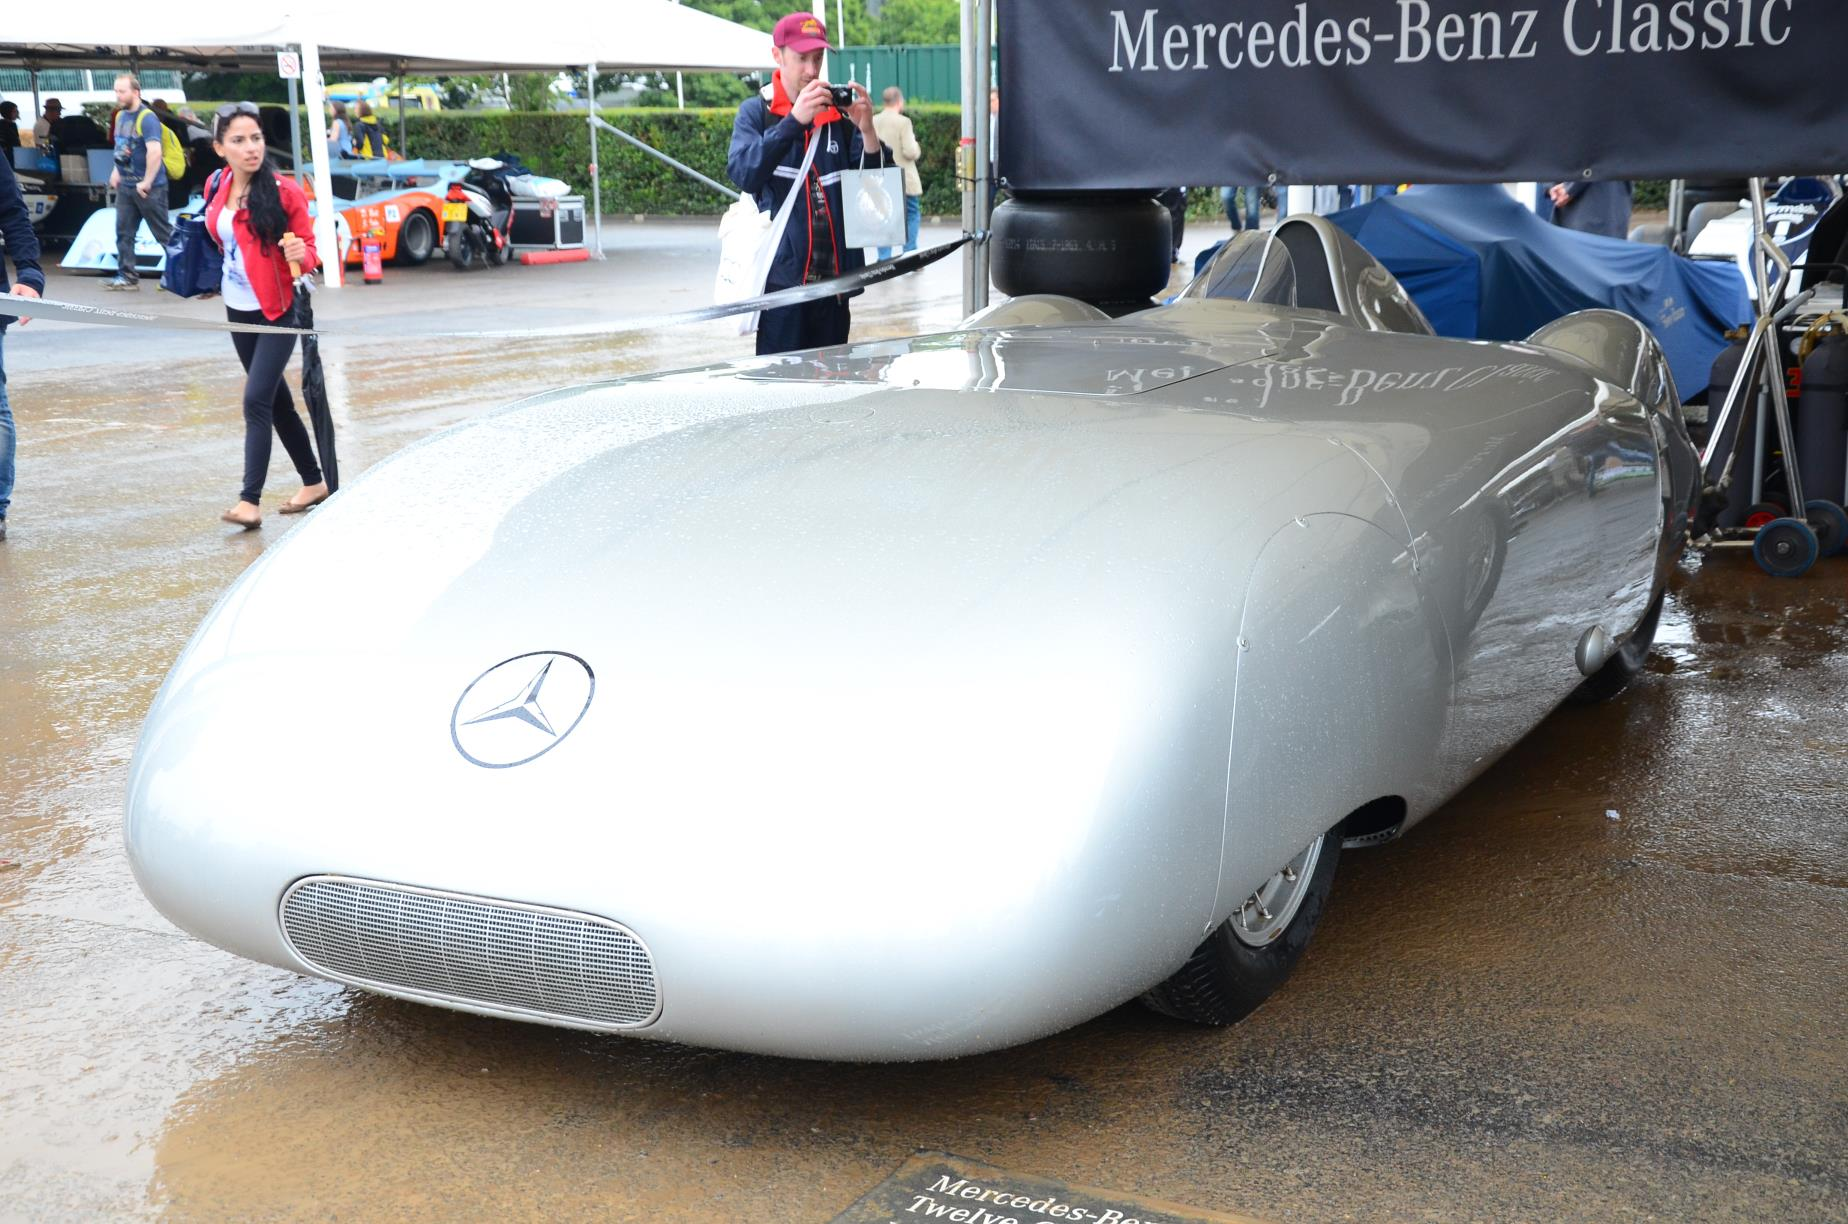 1936 Mercedes Benz W25 AVUS Streamliner 2